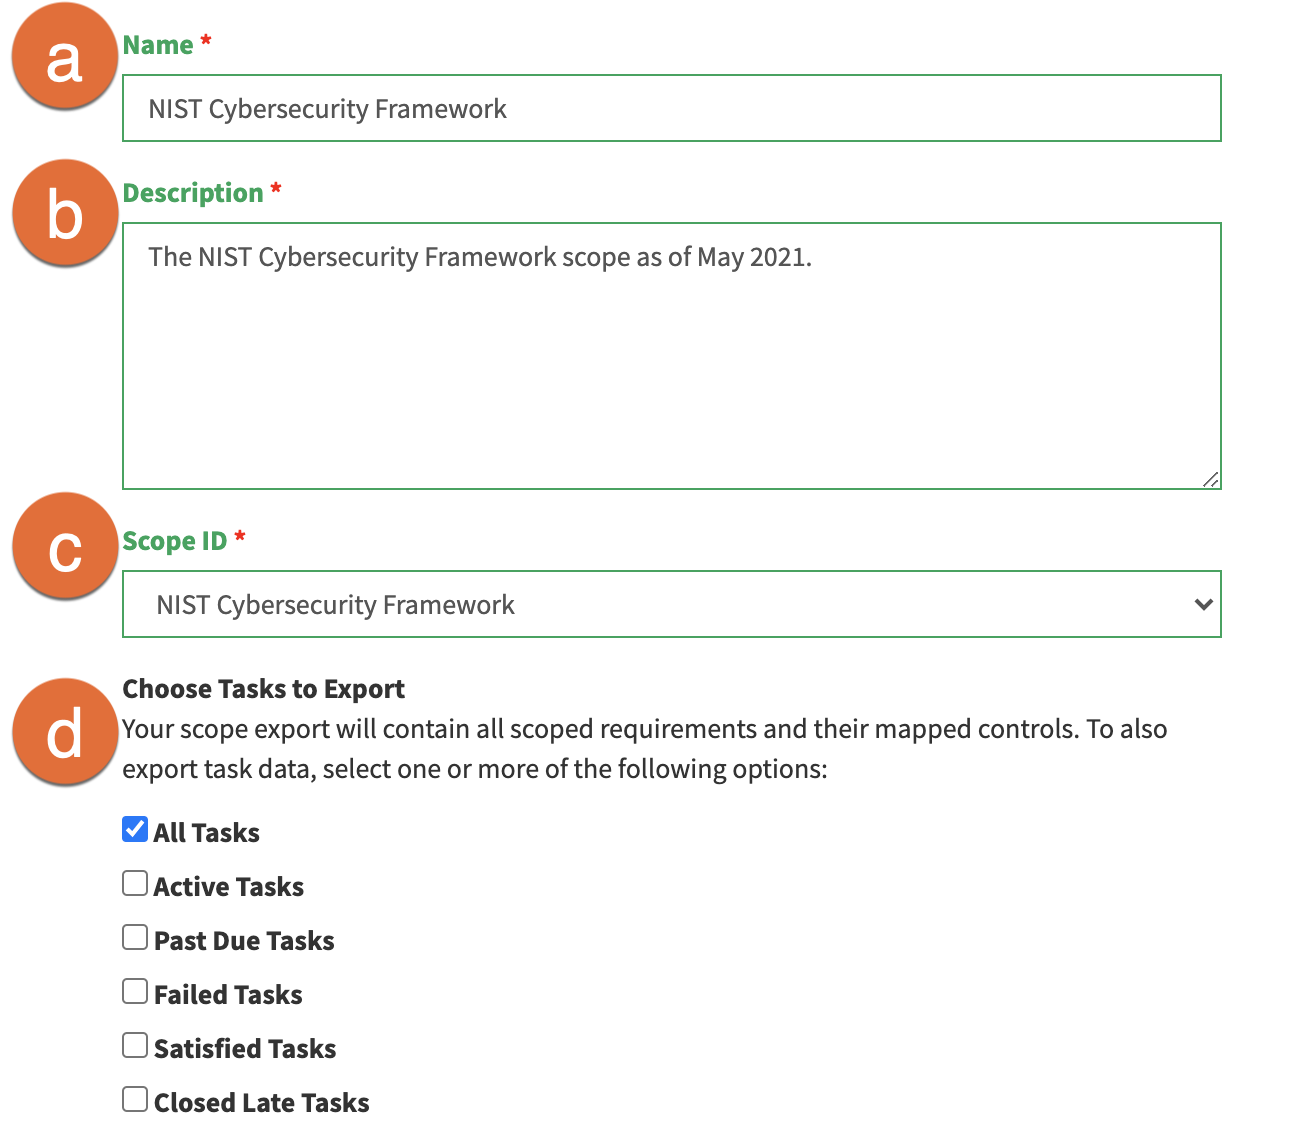 The Export a Scope page with Name, Description, Scope ID, and Choose Tasks to Export fields.